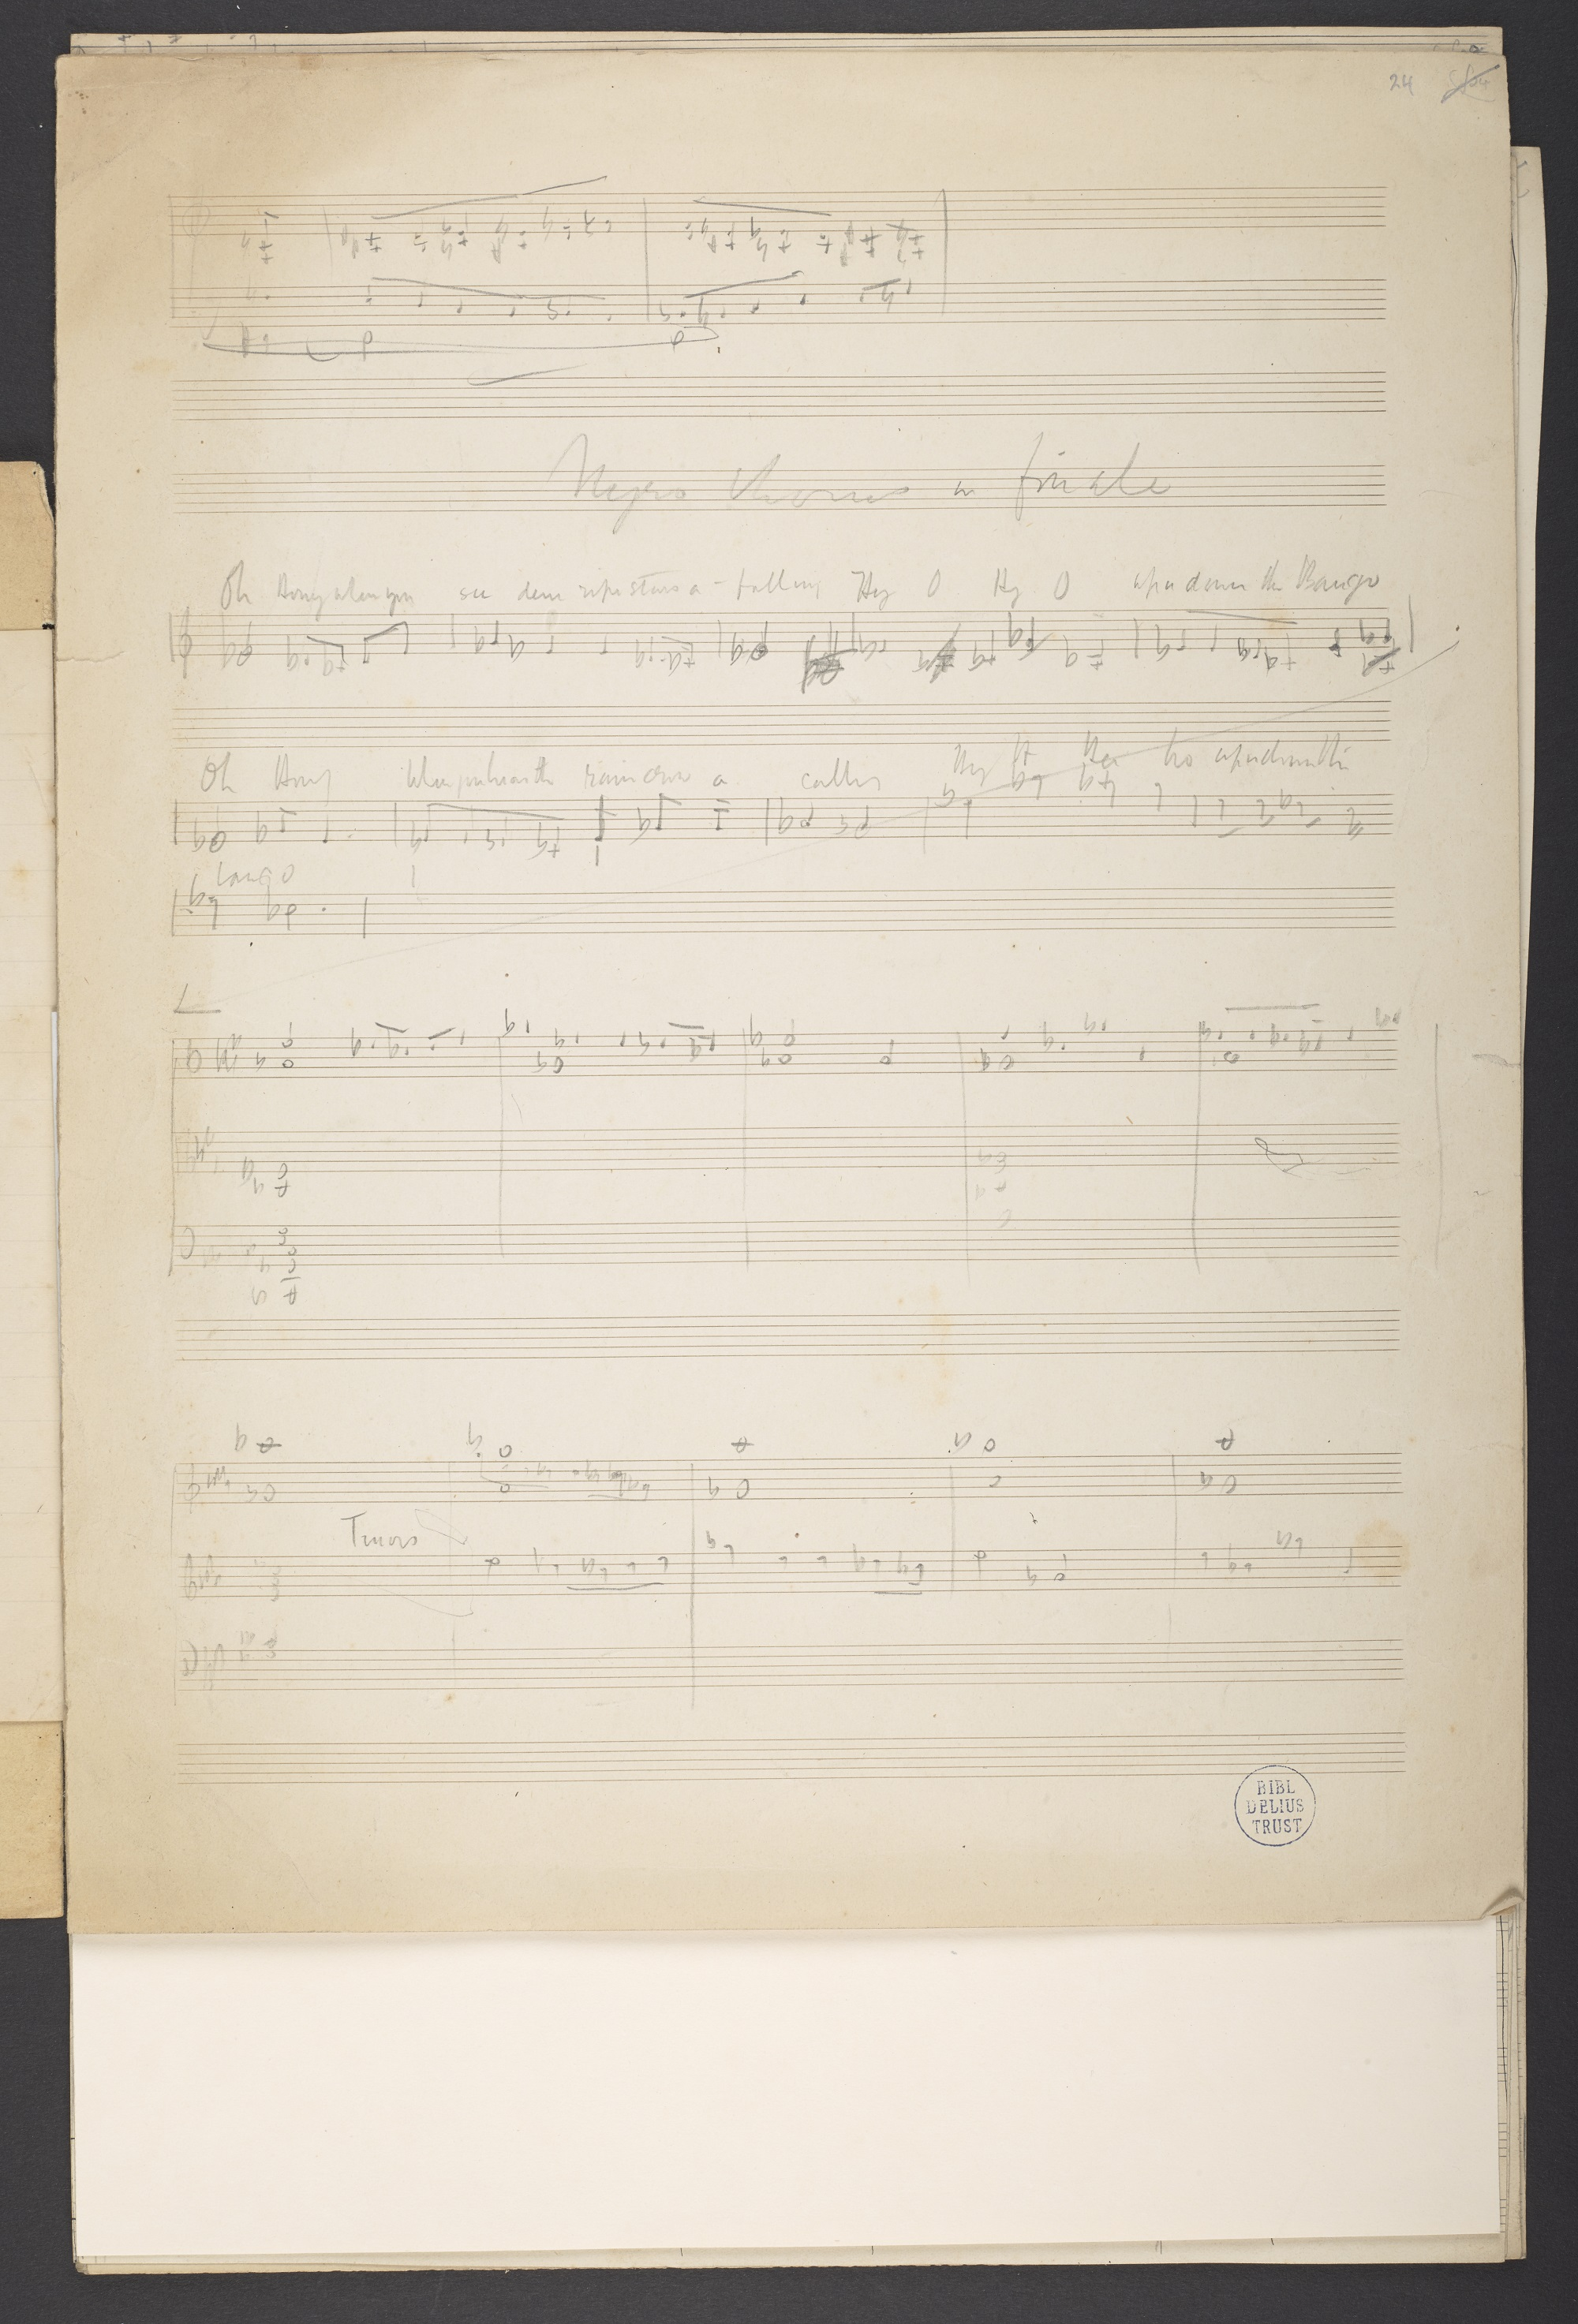 Sketch for Frederick Delius, 'Appalachia', final chorus, f. 24r